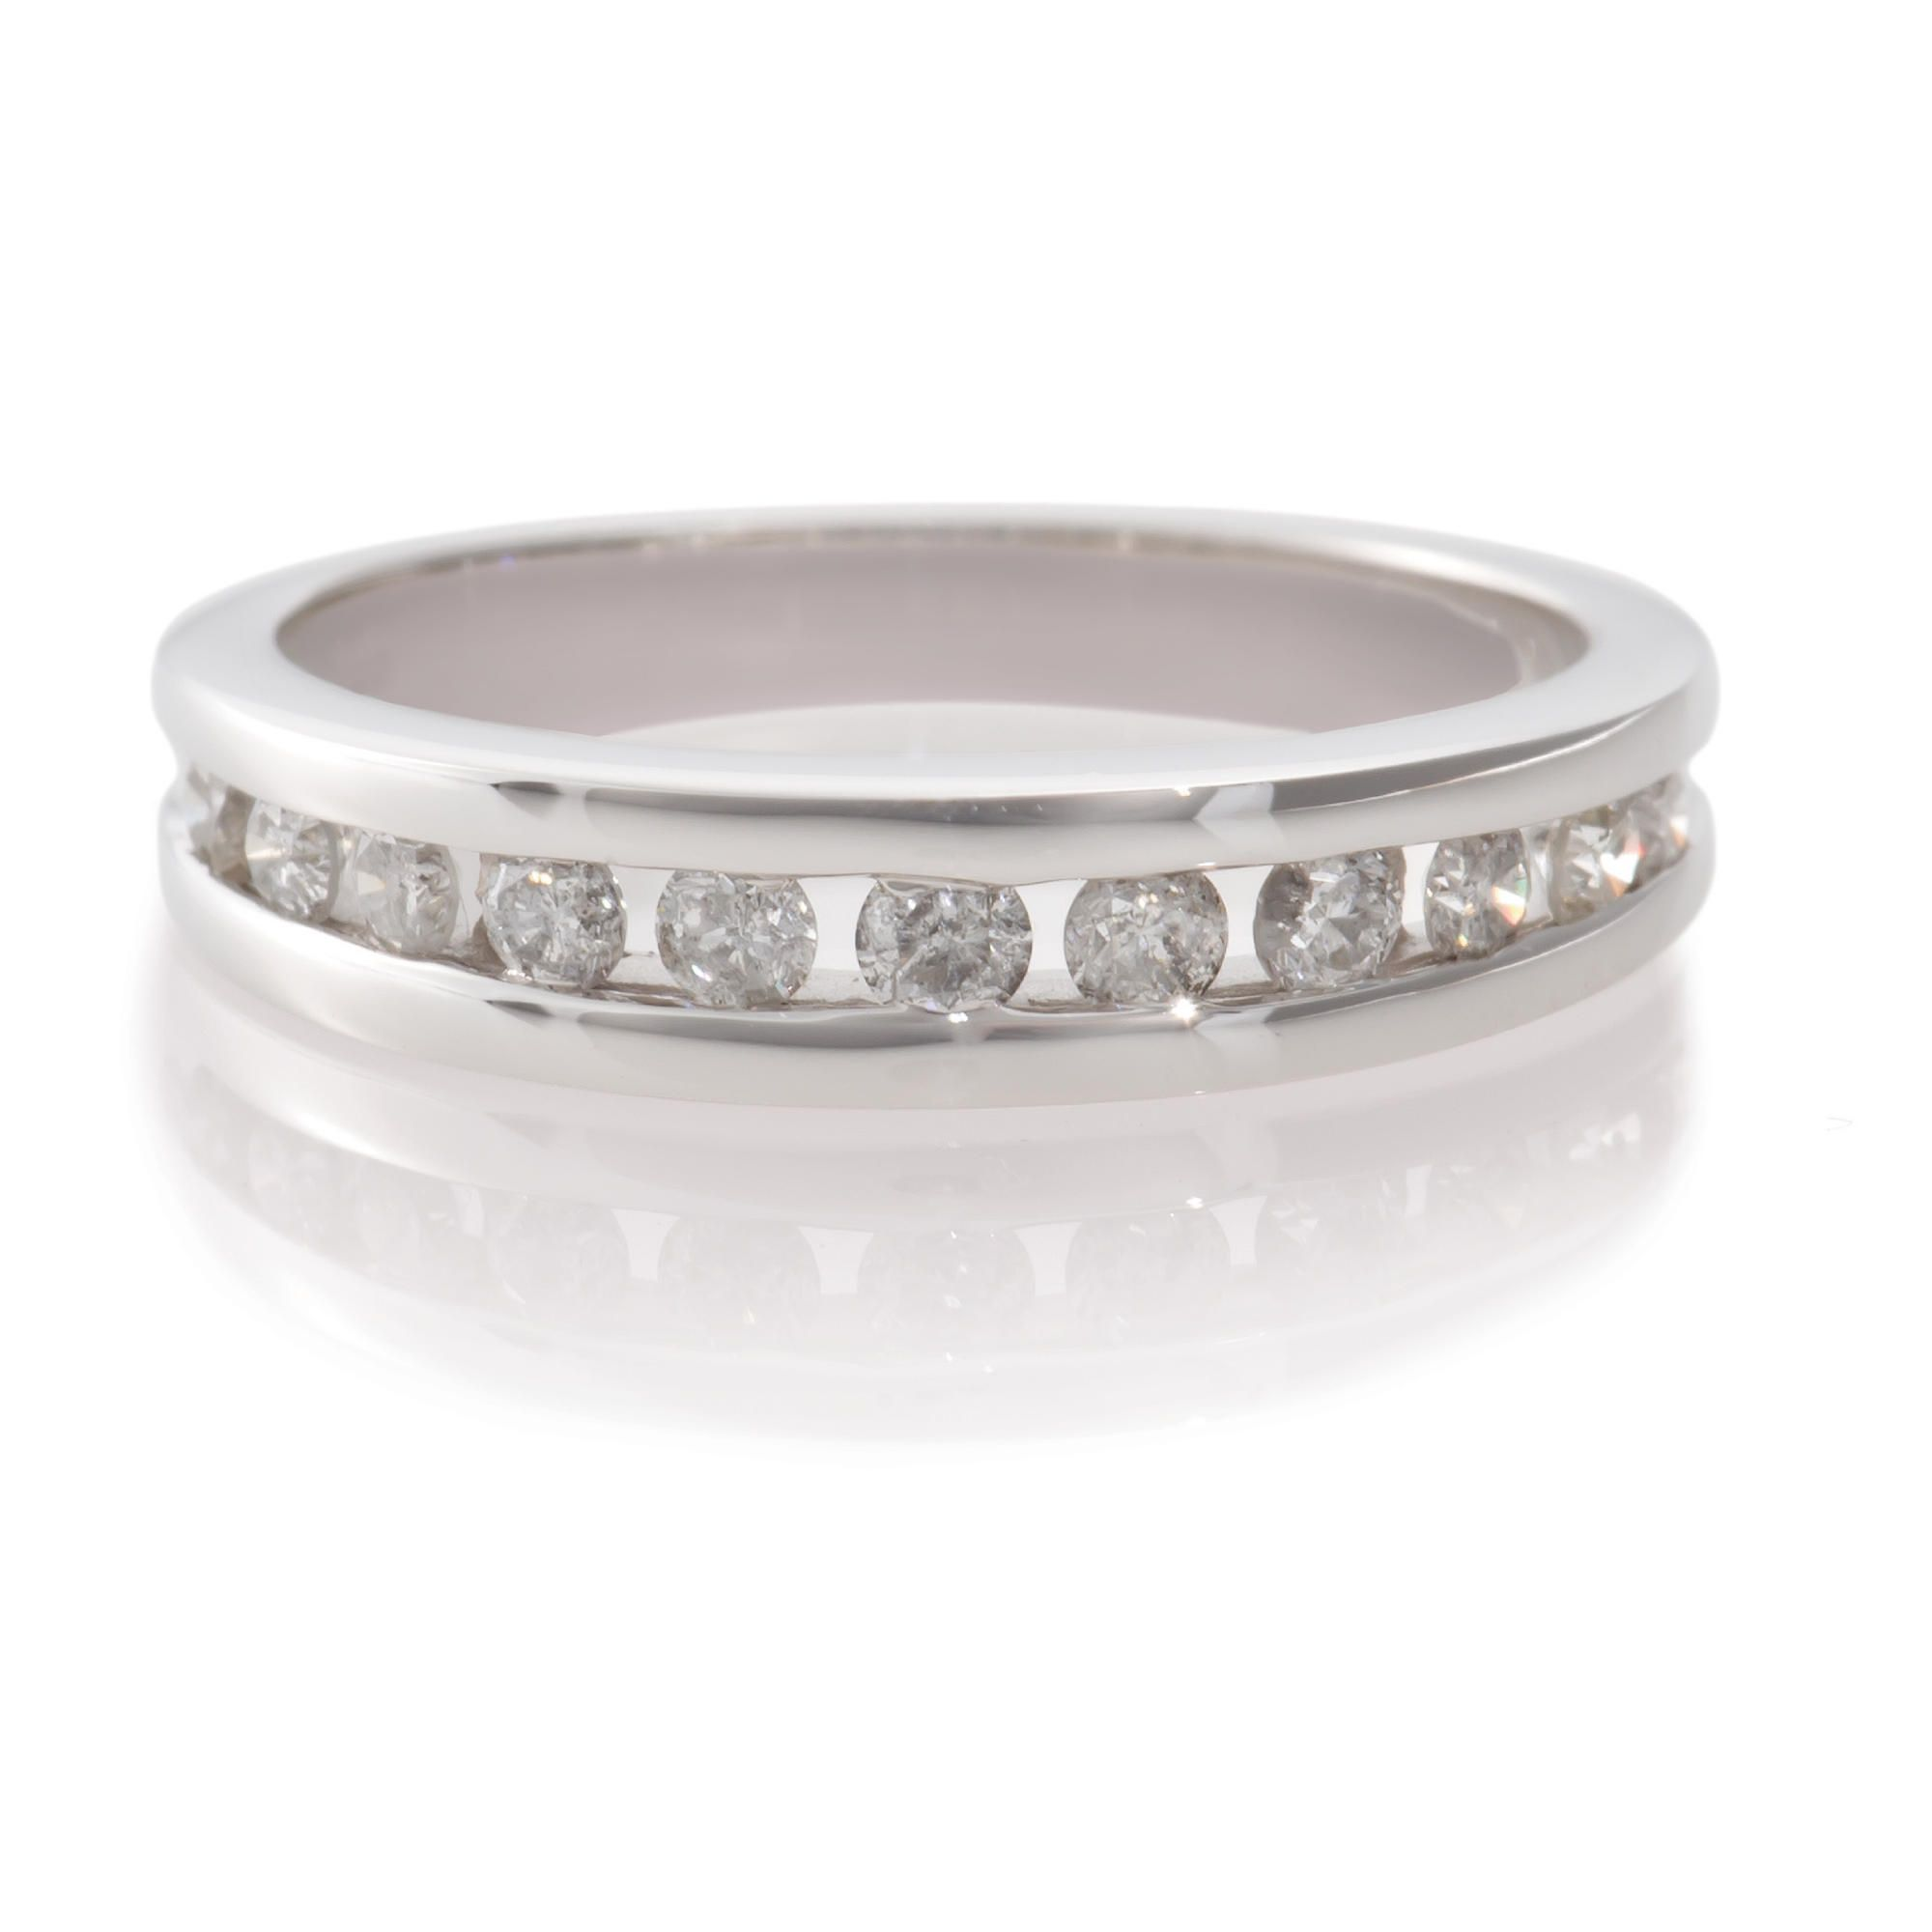 9ct White Gold 1/2ct Diamond Eternity Ring, N at Tesco Direct